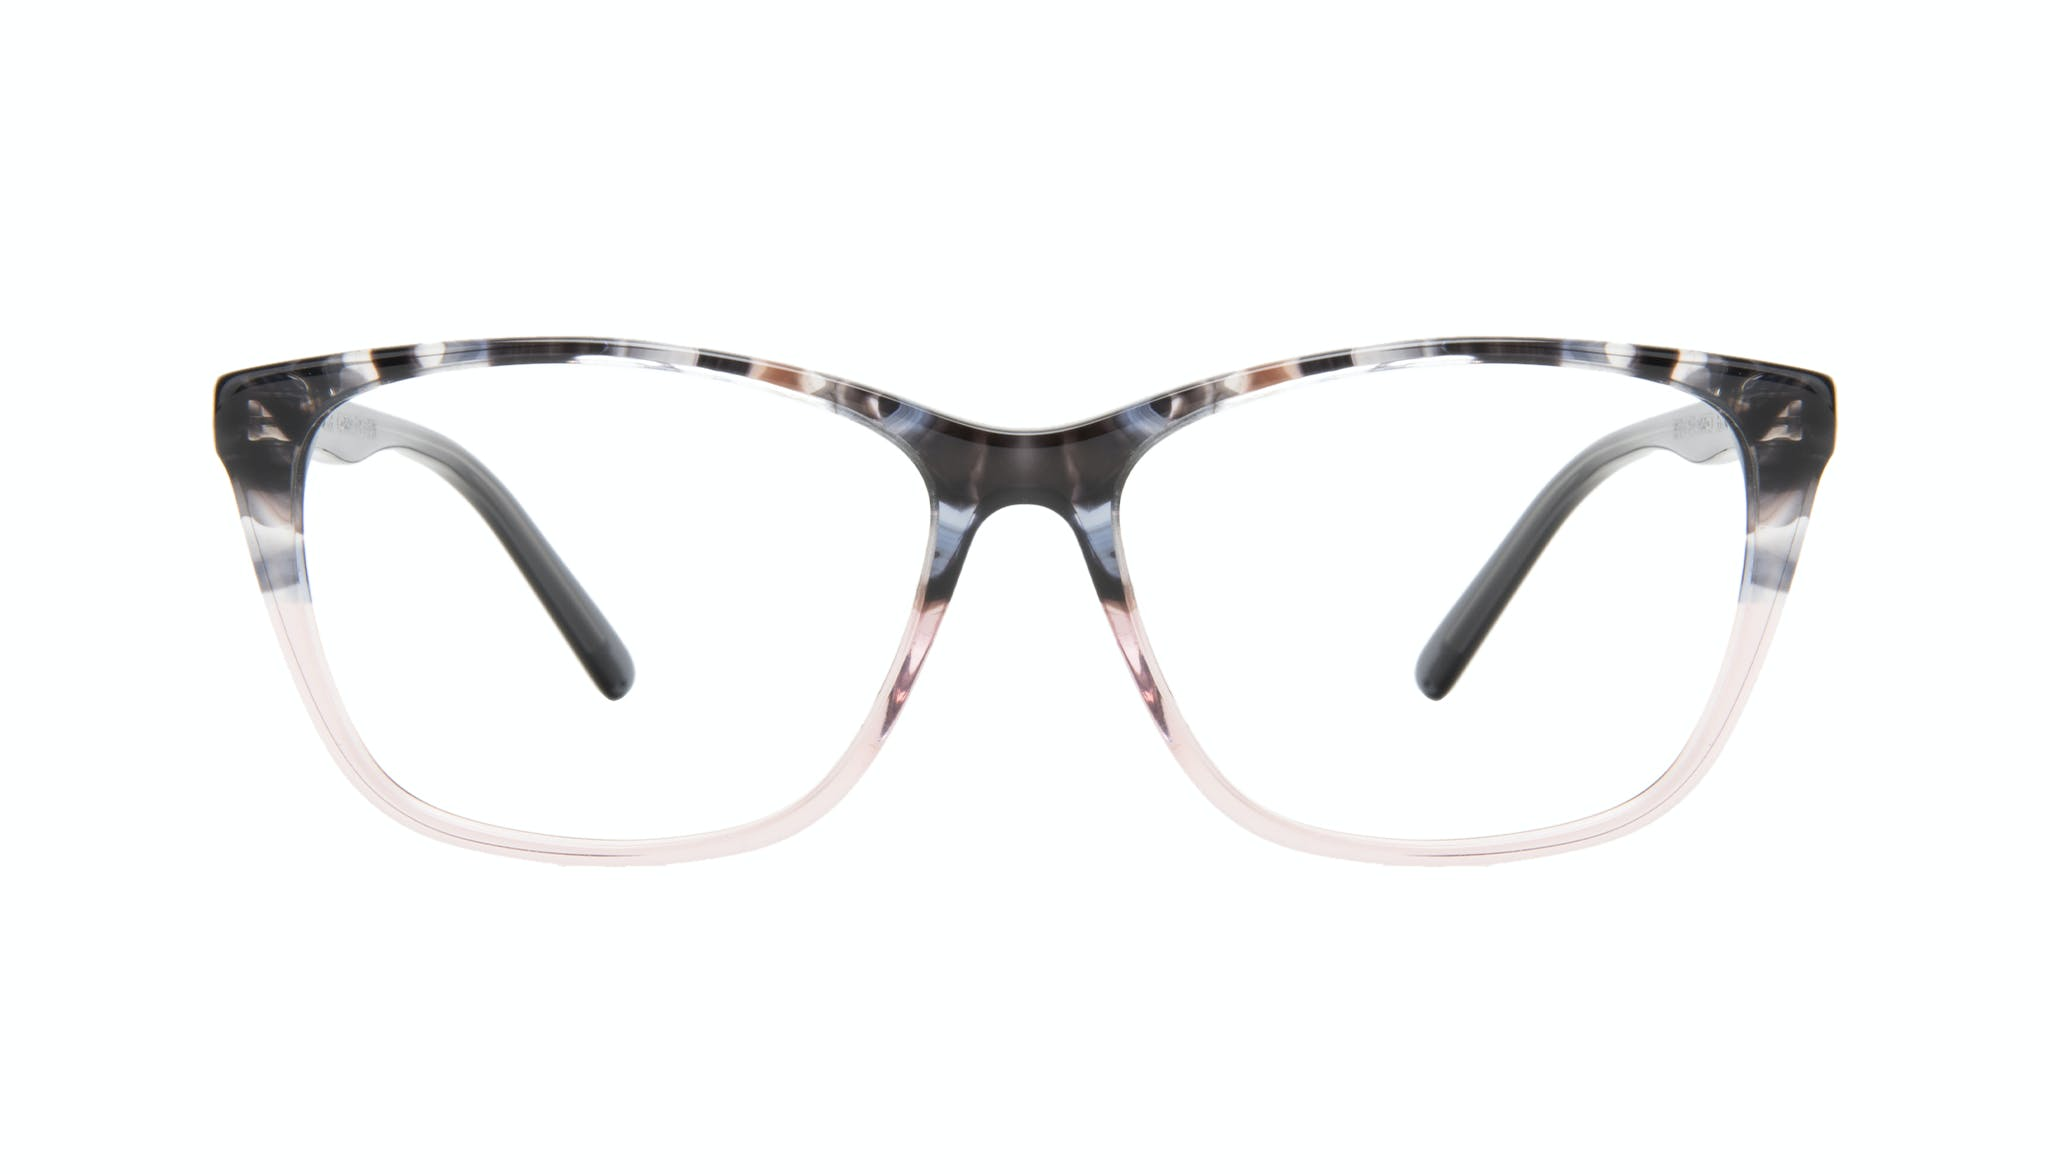 Affordable Fashion Glasses Cat Eye Rectangle Eyeglasses Women Myrtle Carbone Pink Front